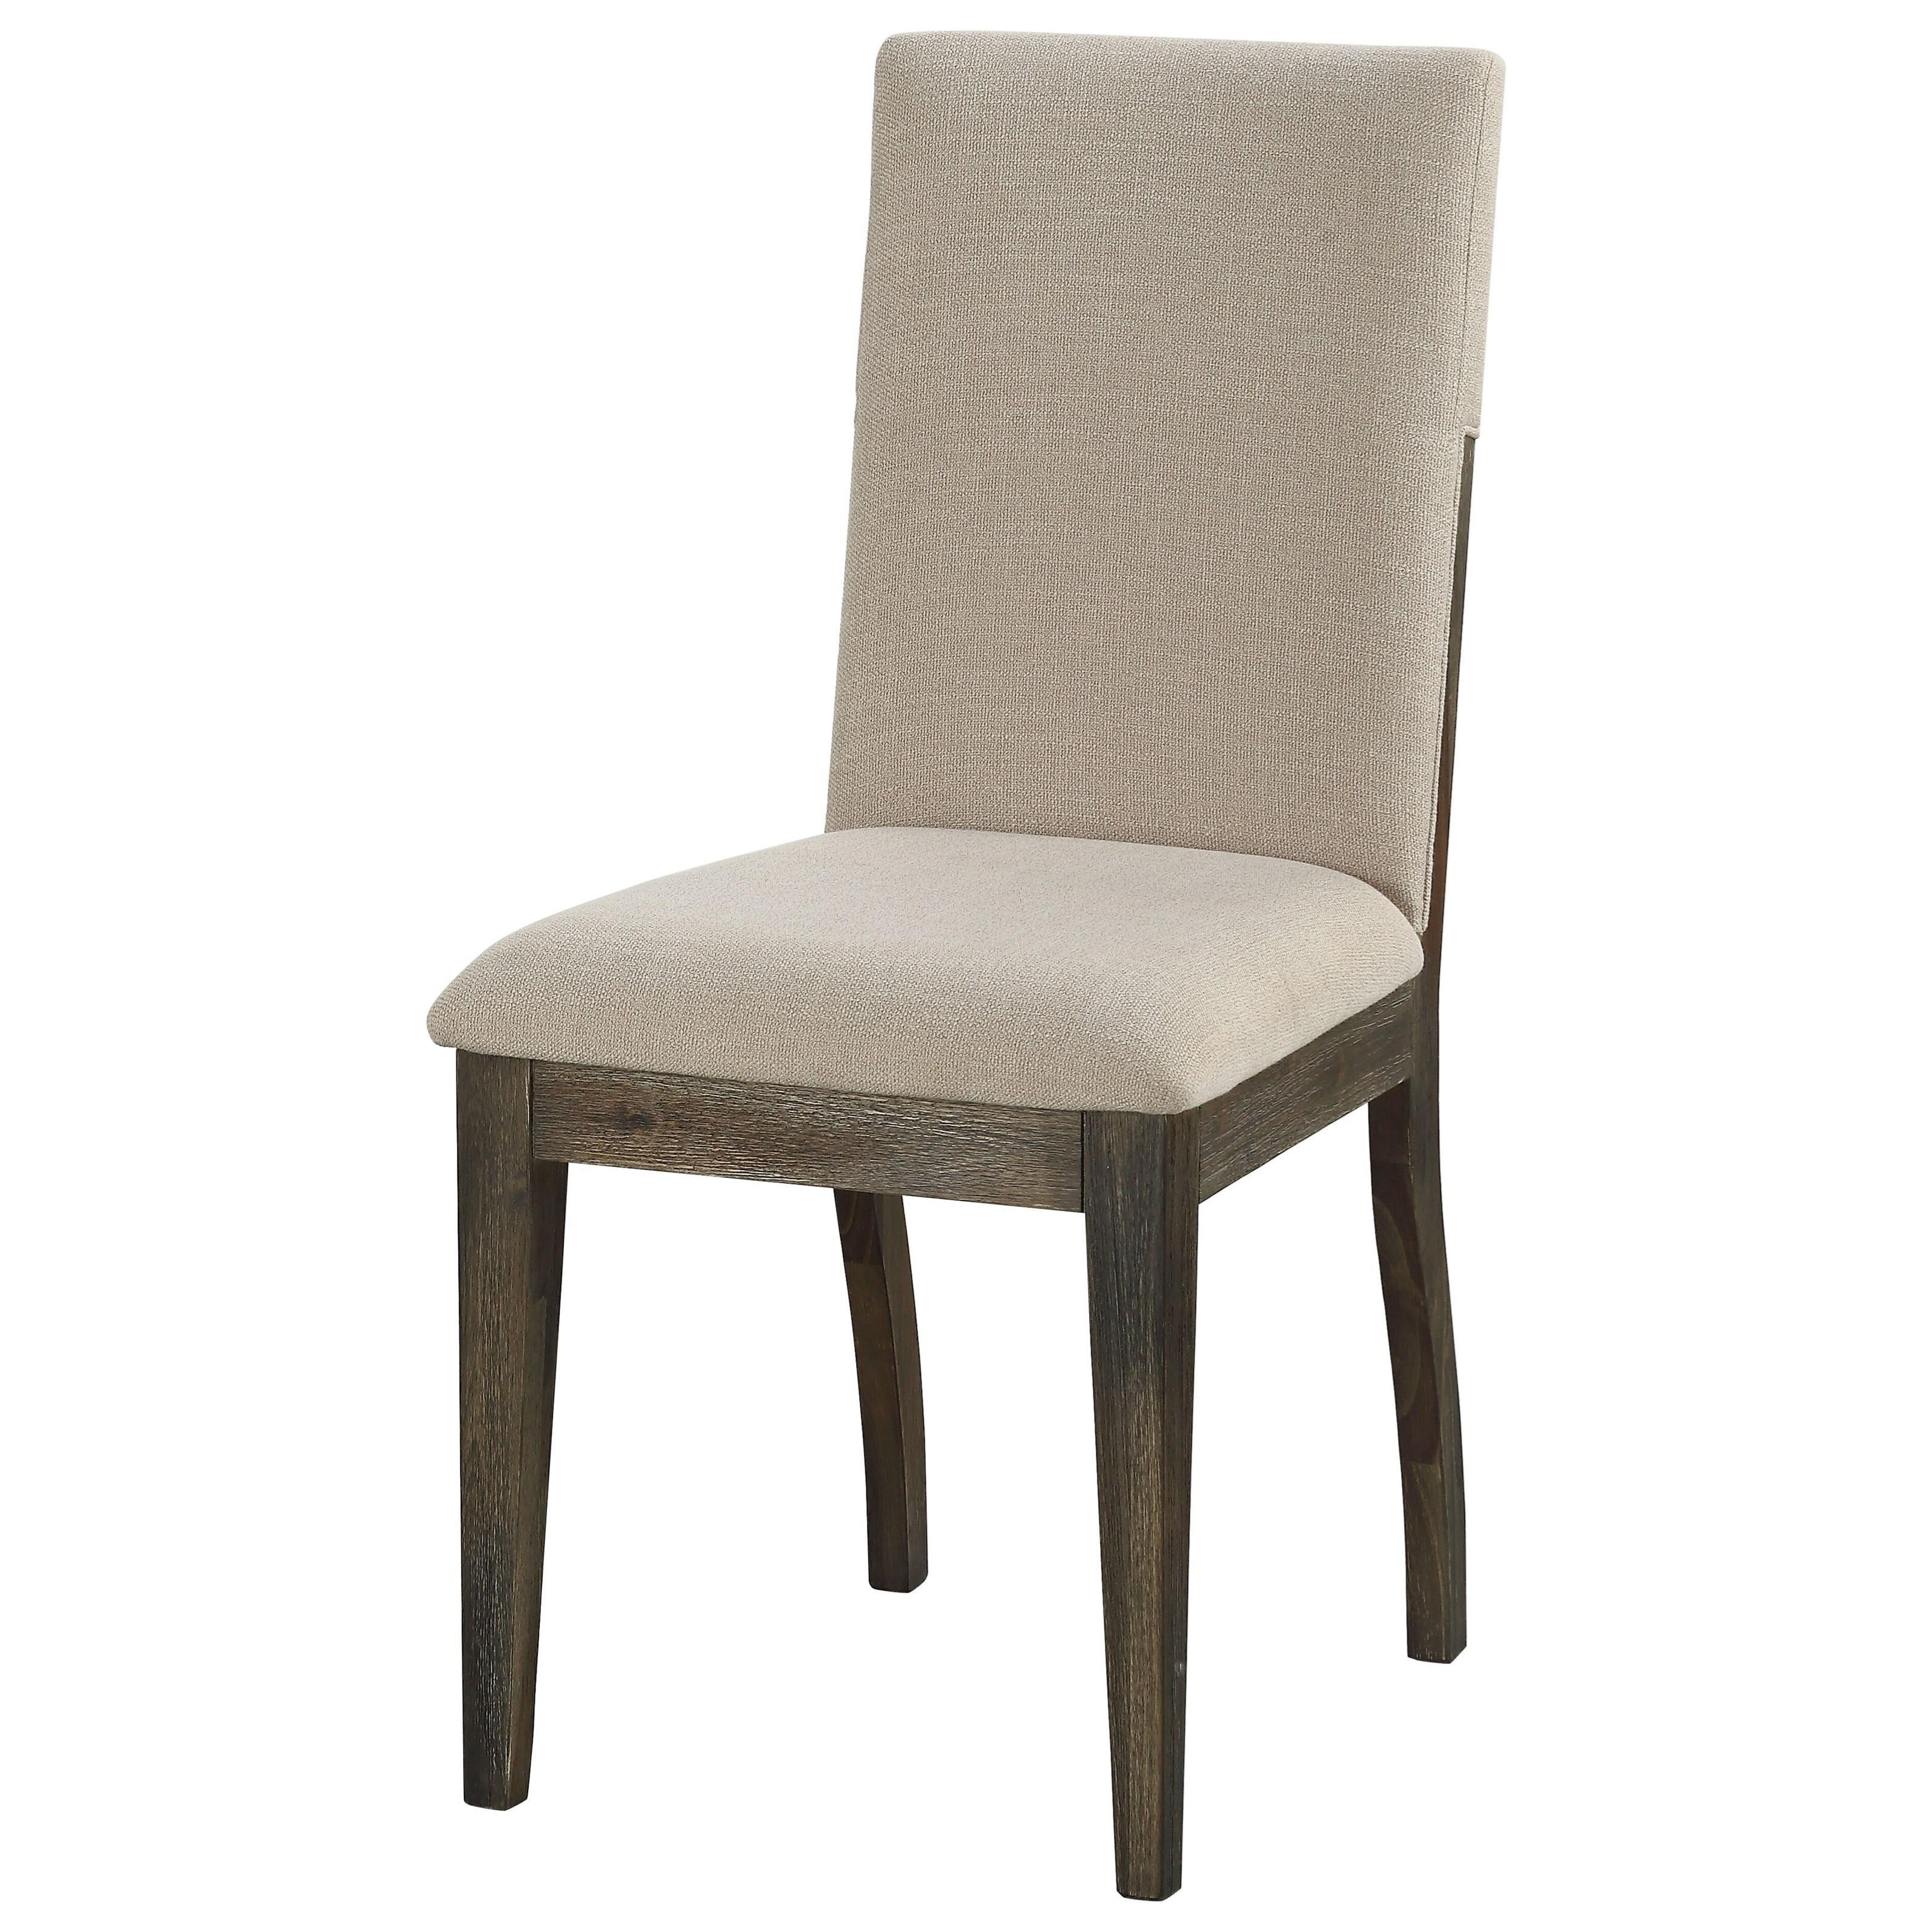 Aspen Court Dining Side Chair 2-Pack by Coast to Coast Imports at Zak's Home